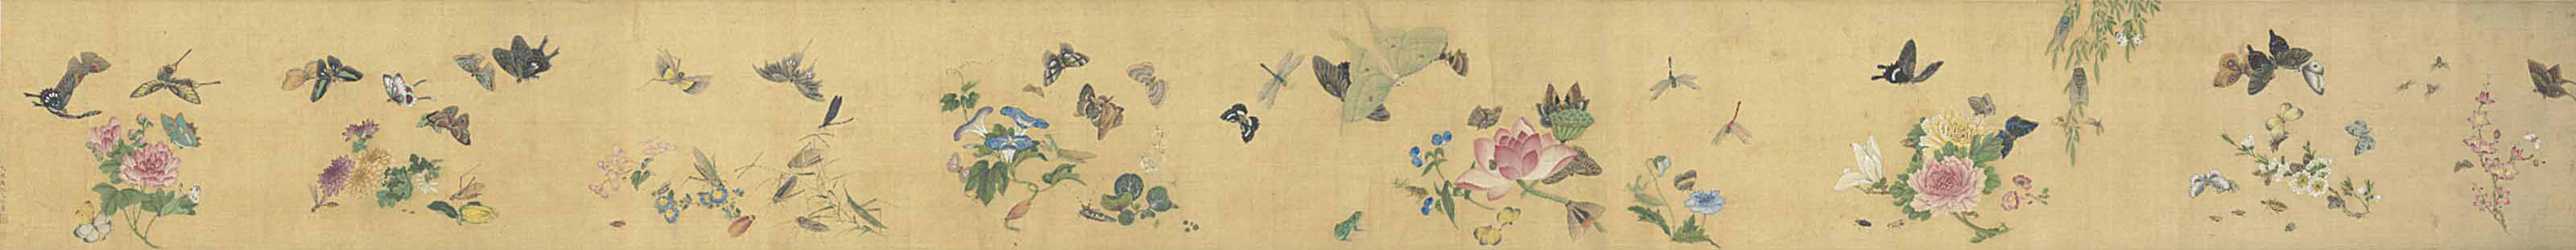 FLOWER, BUTTERFLIES AND INSECT